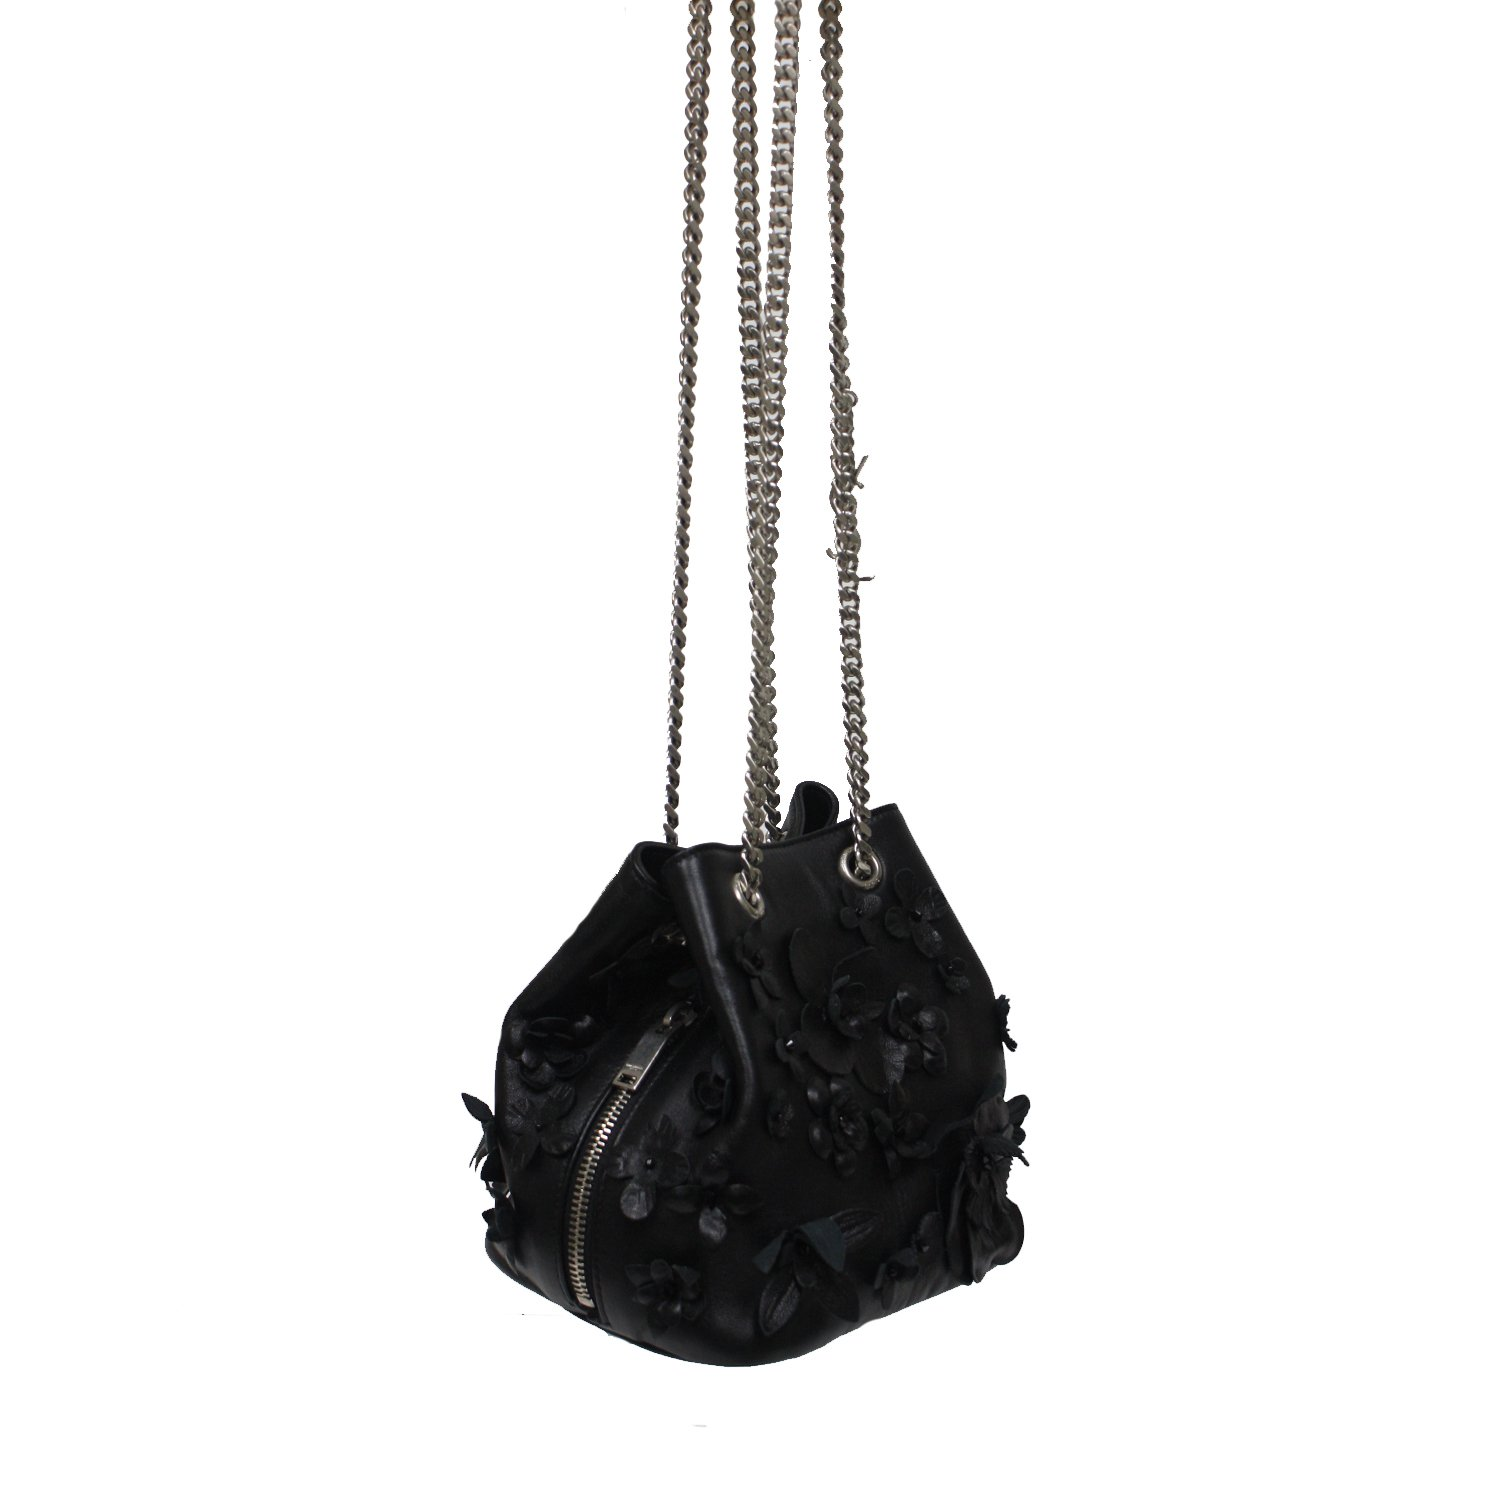 075460cf3063 Saint Laurent YSL Small Emmanuelle Flower Nappa Leather Bucket Chain Bag  425068 1000  Amazon.ca  Shoes   Handbags